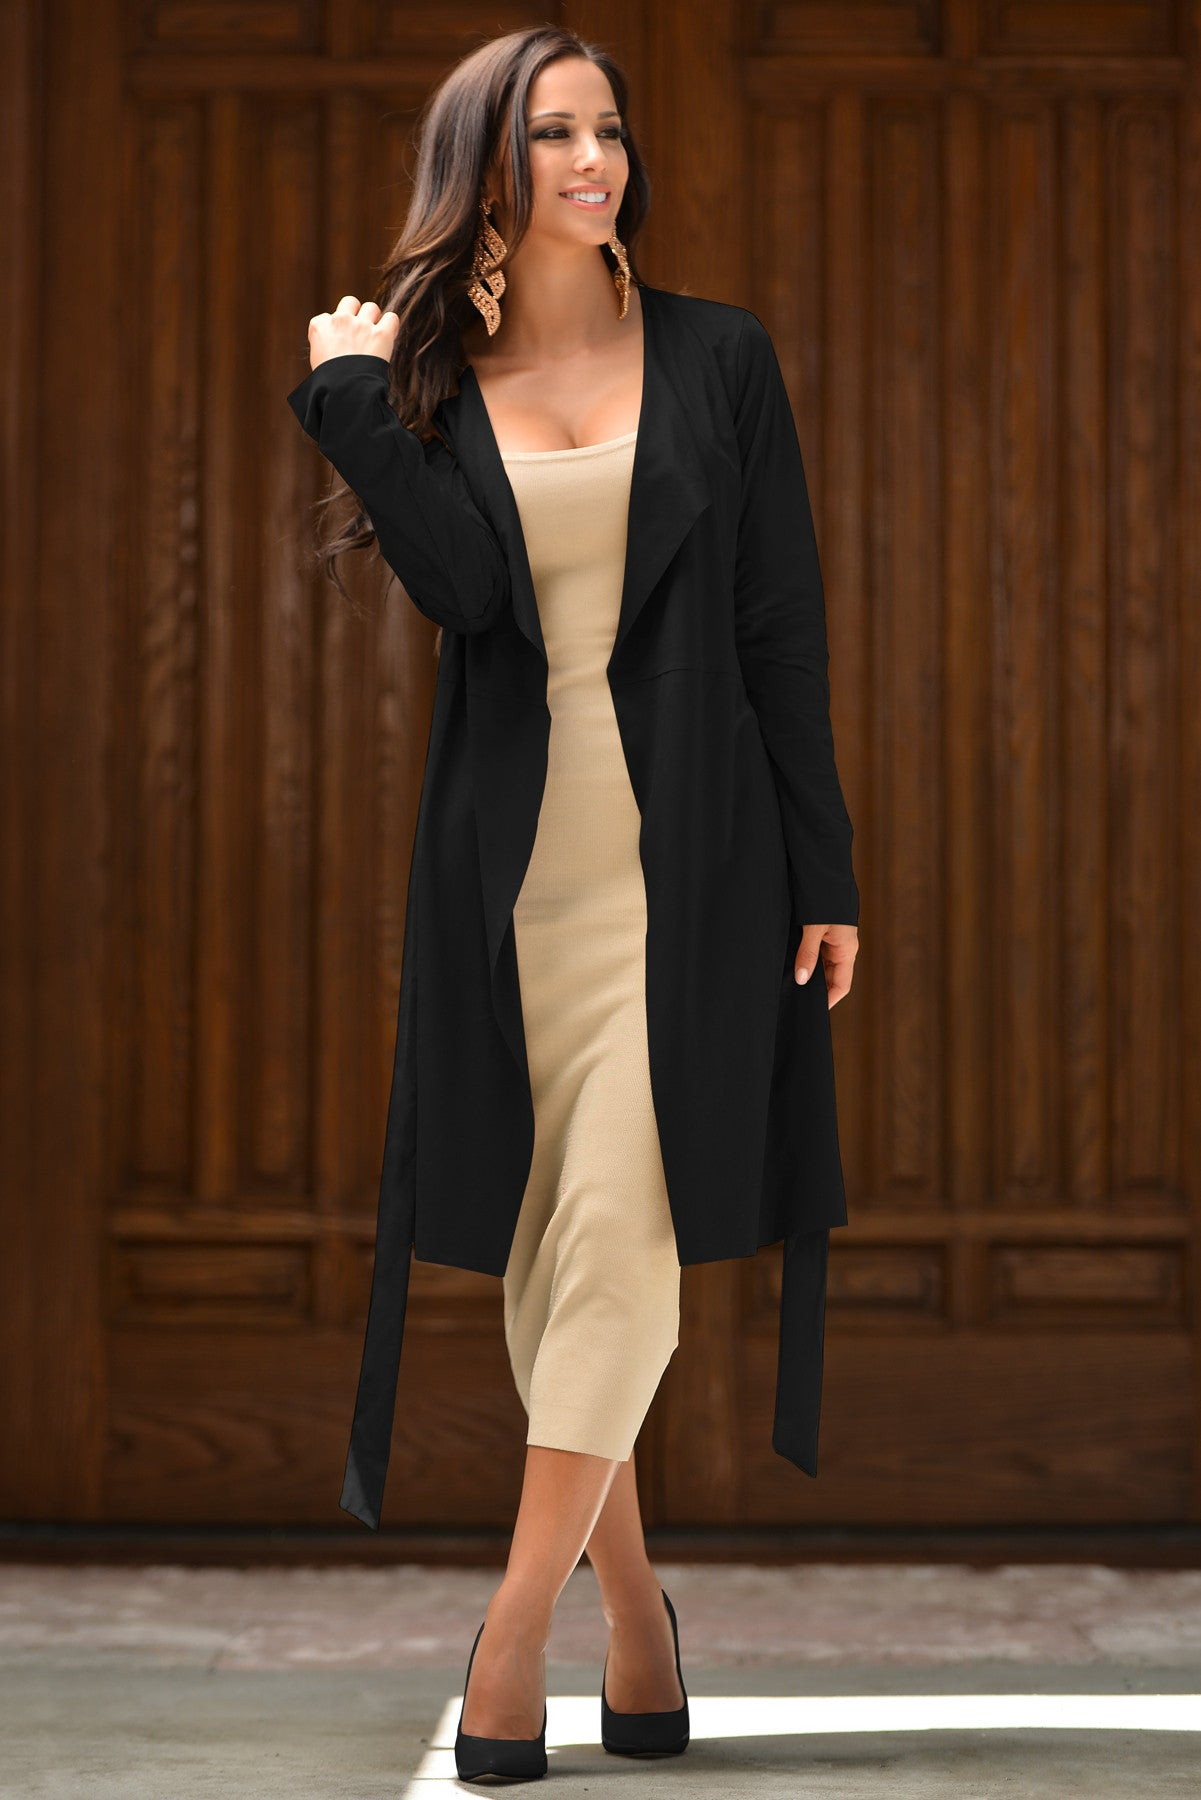 Vania Suede Duster Black - Fashion Effect Store  - 1